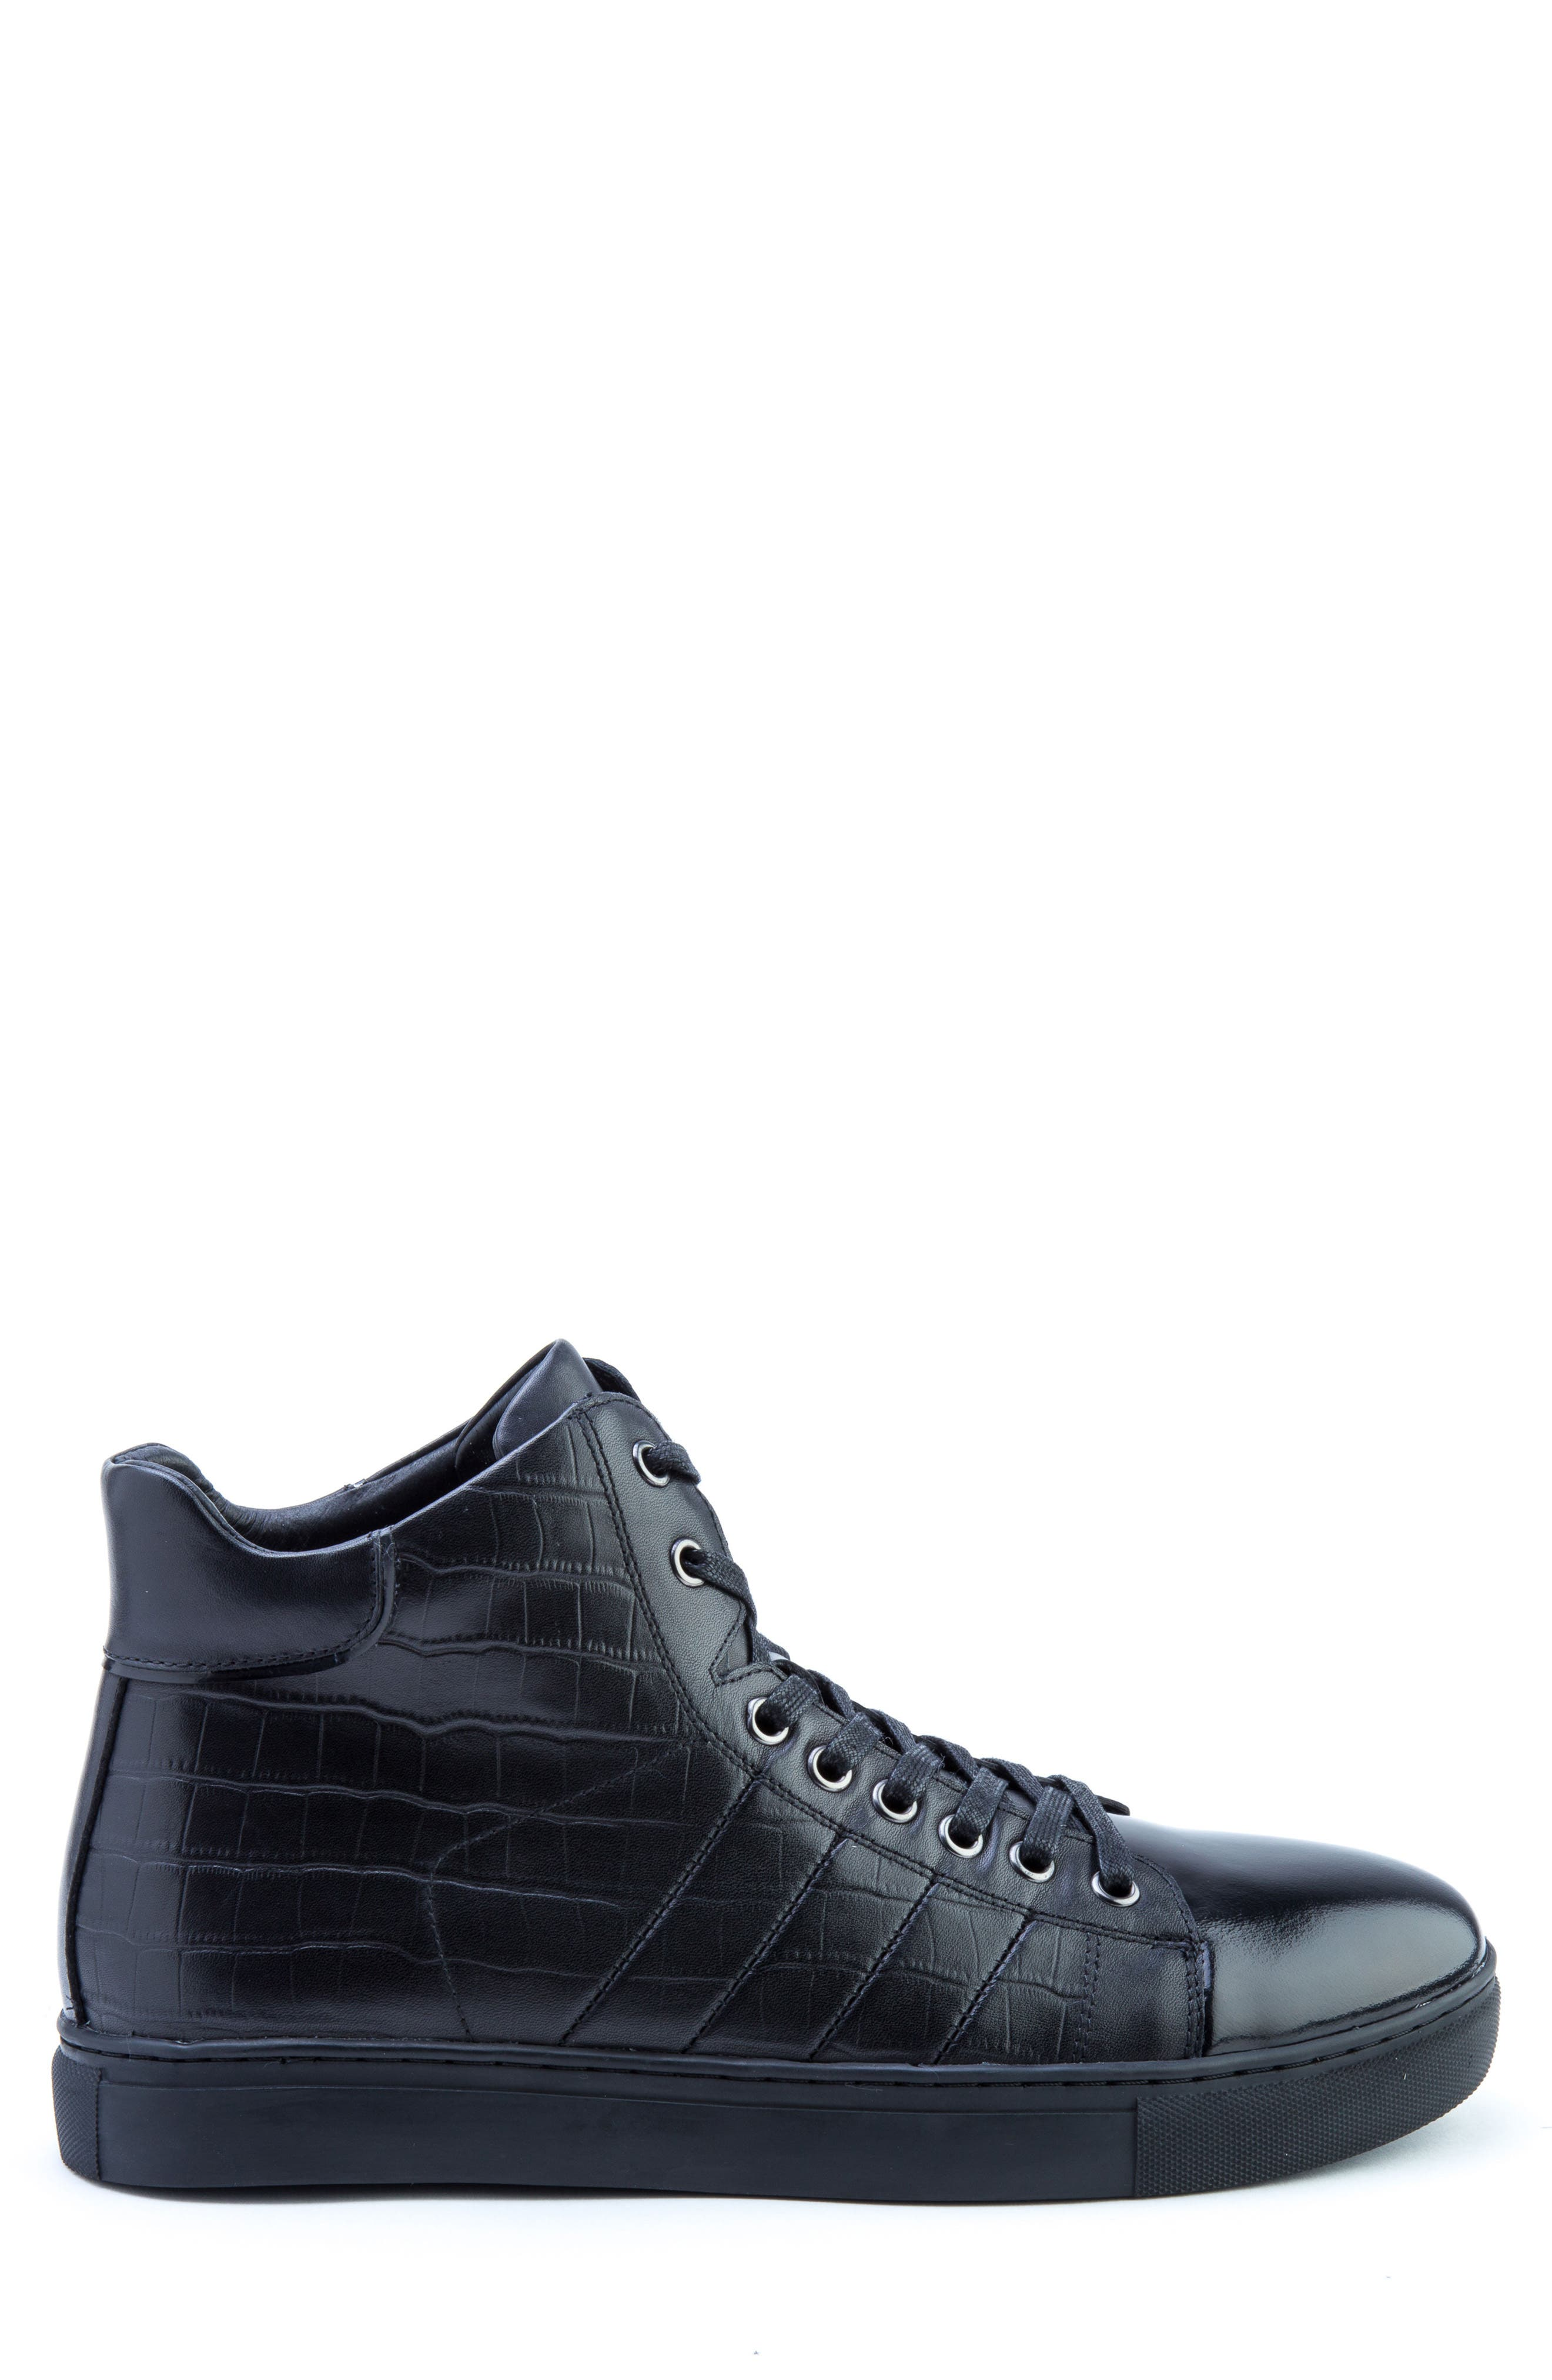 Clift High Top Sneaker,                             Alternate thumbnail 3, color,                             001